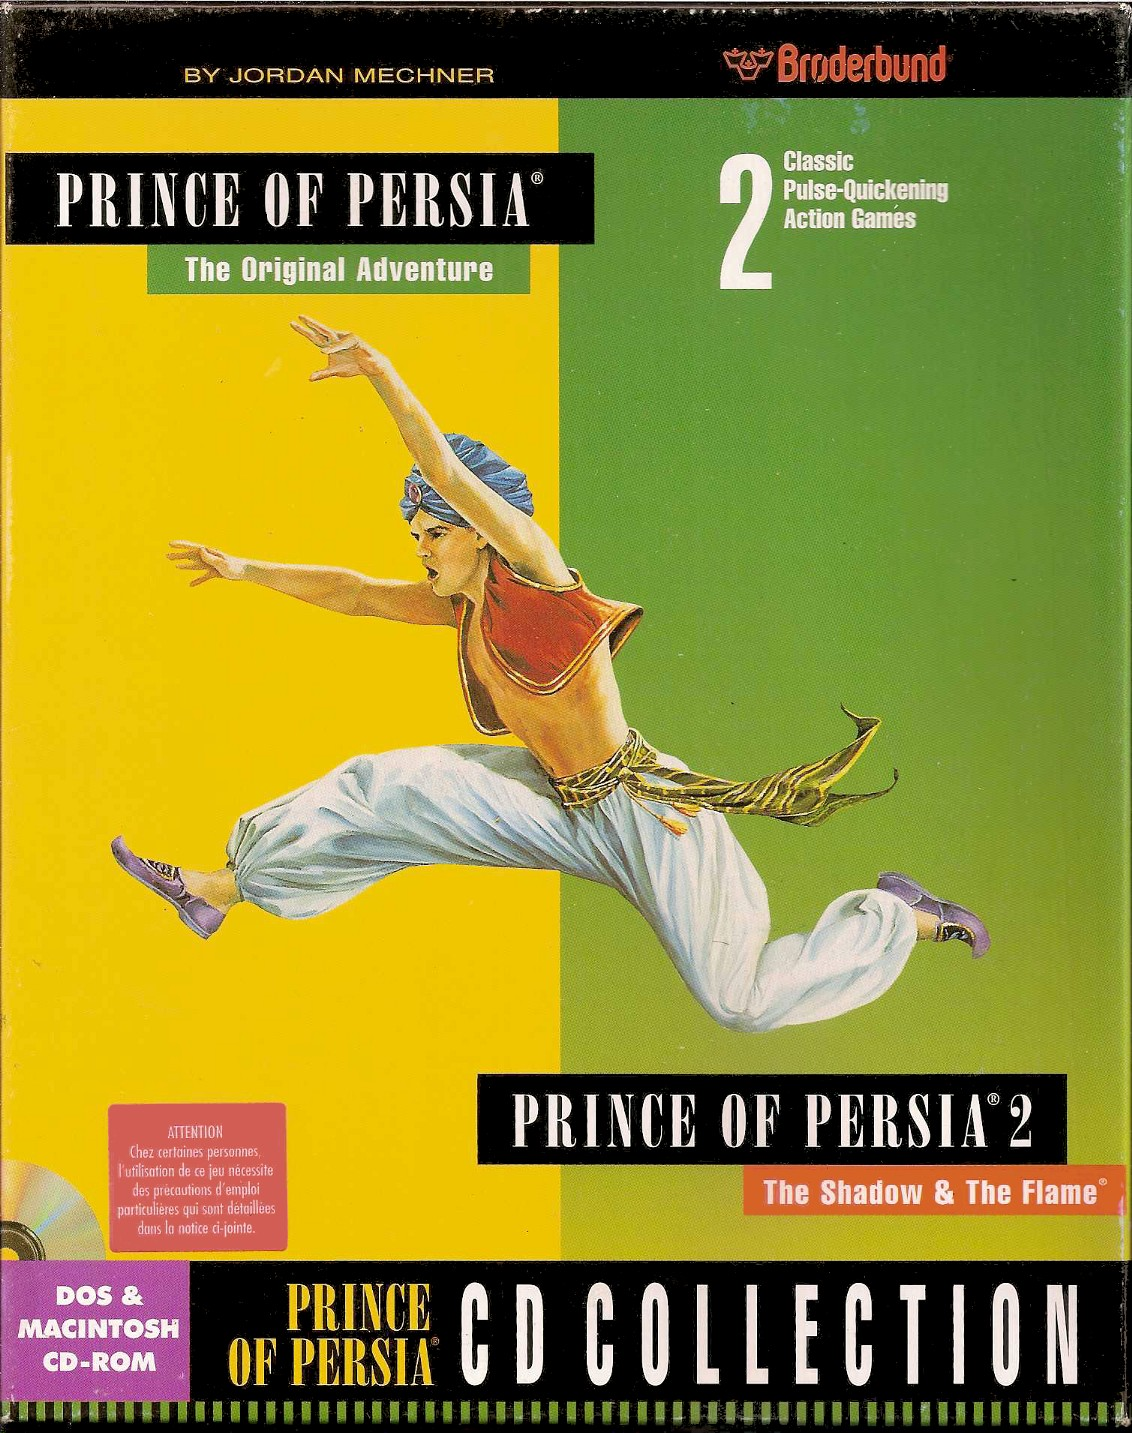 image : /images_abandonware/compilations/187PrincePersiaCollectionRecto.jpg